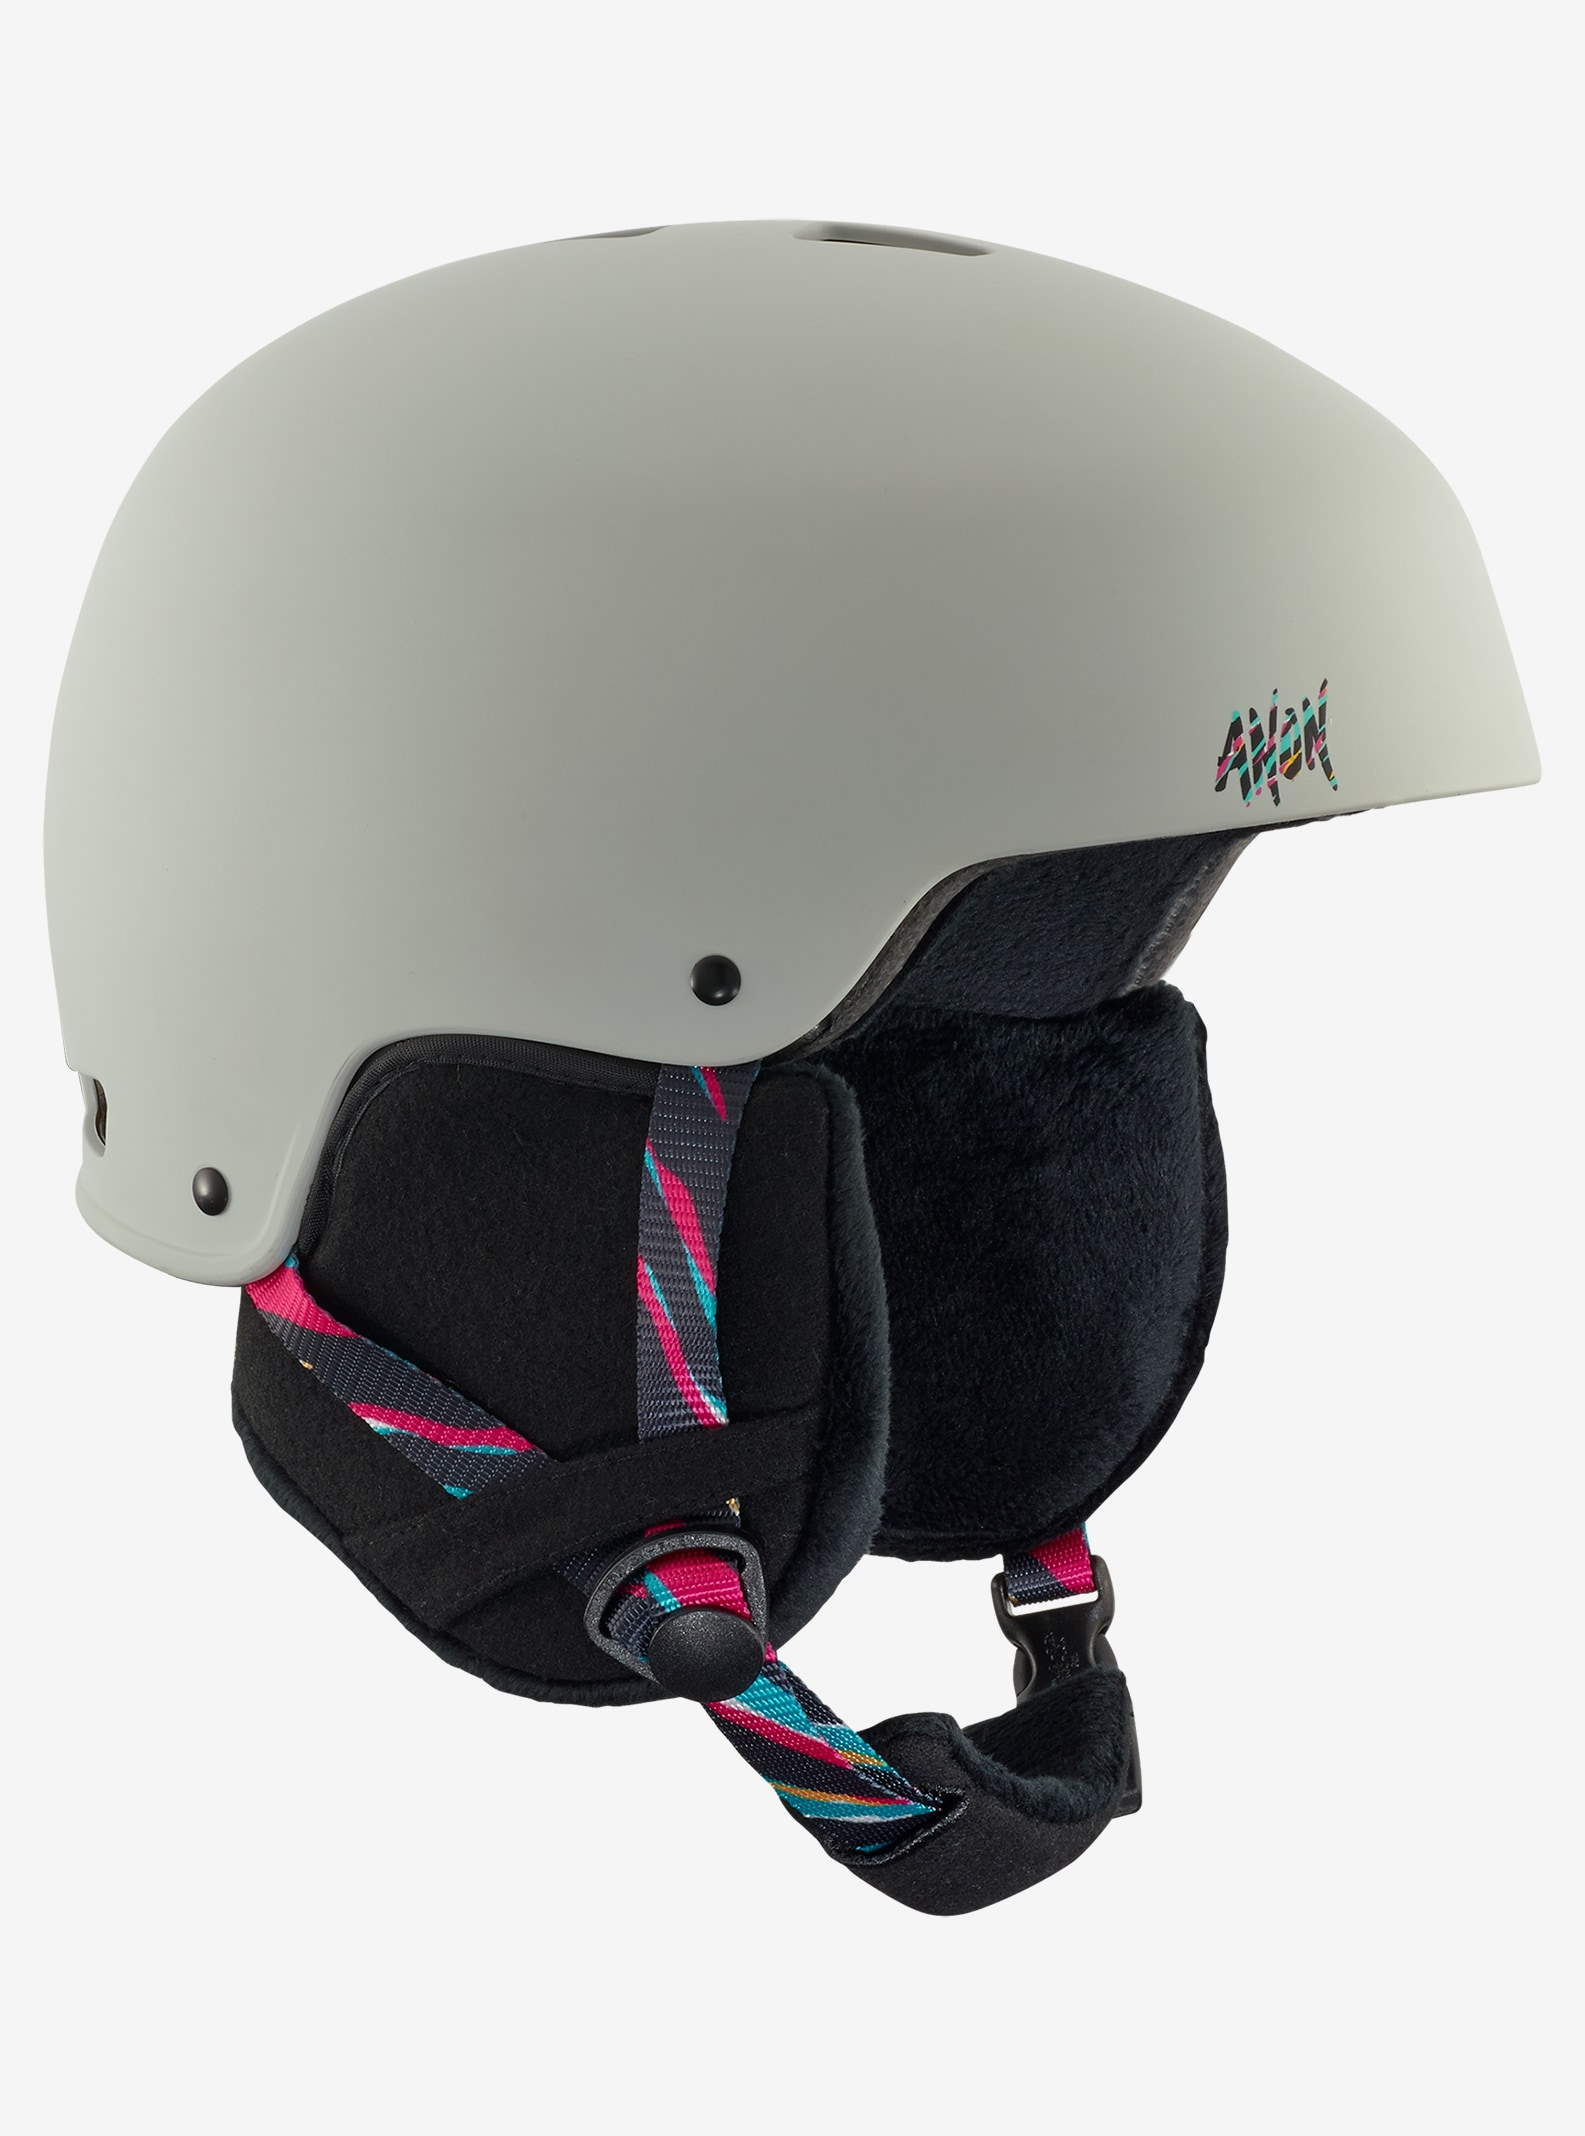 Women's Anon Lynx Helmet shown in Disco Tiger Gray